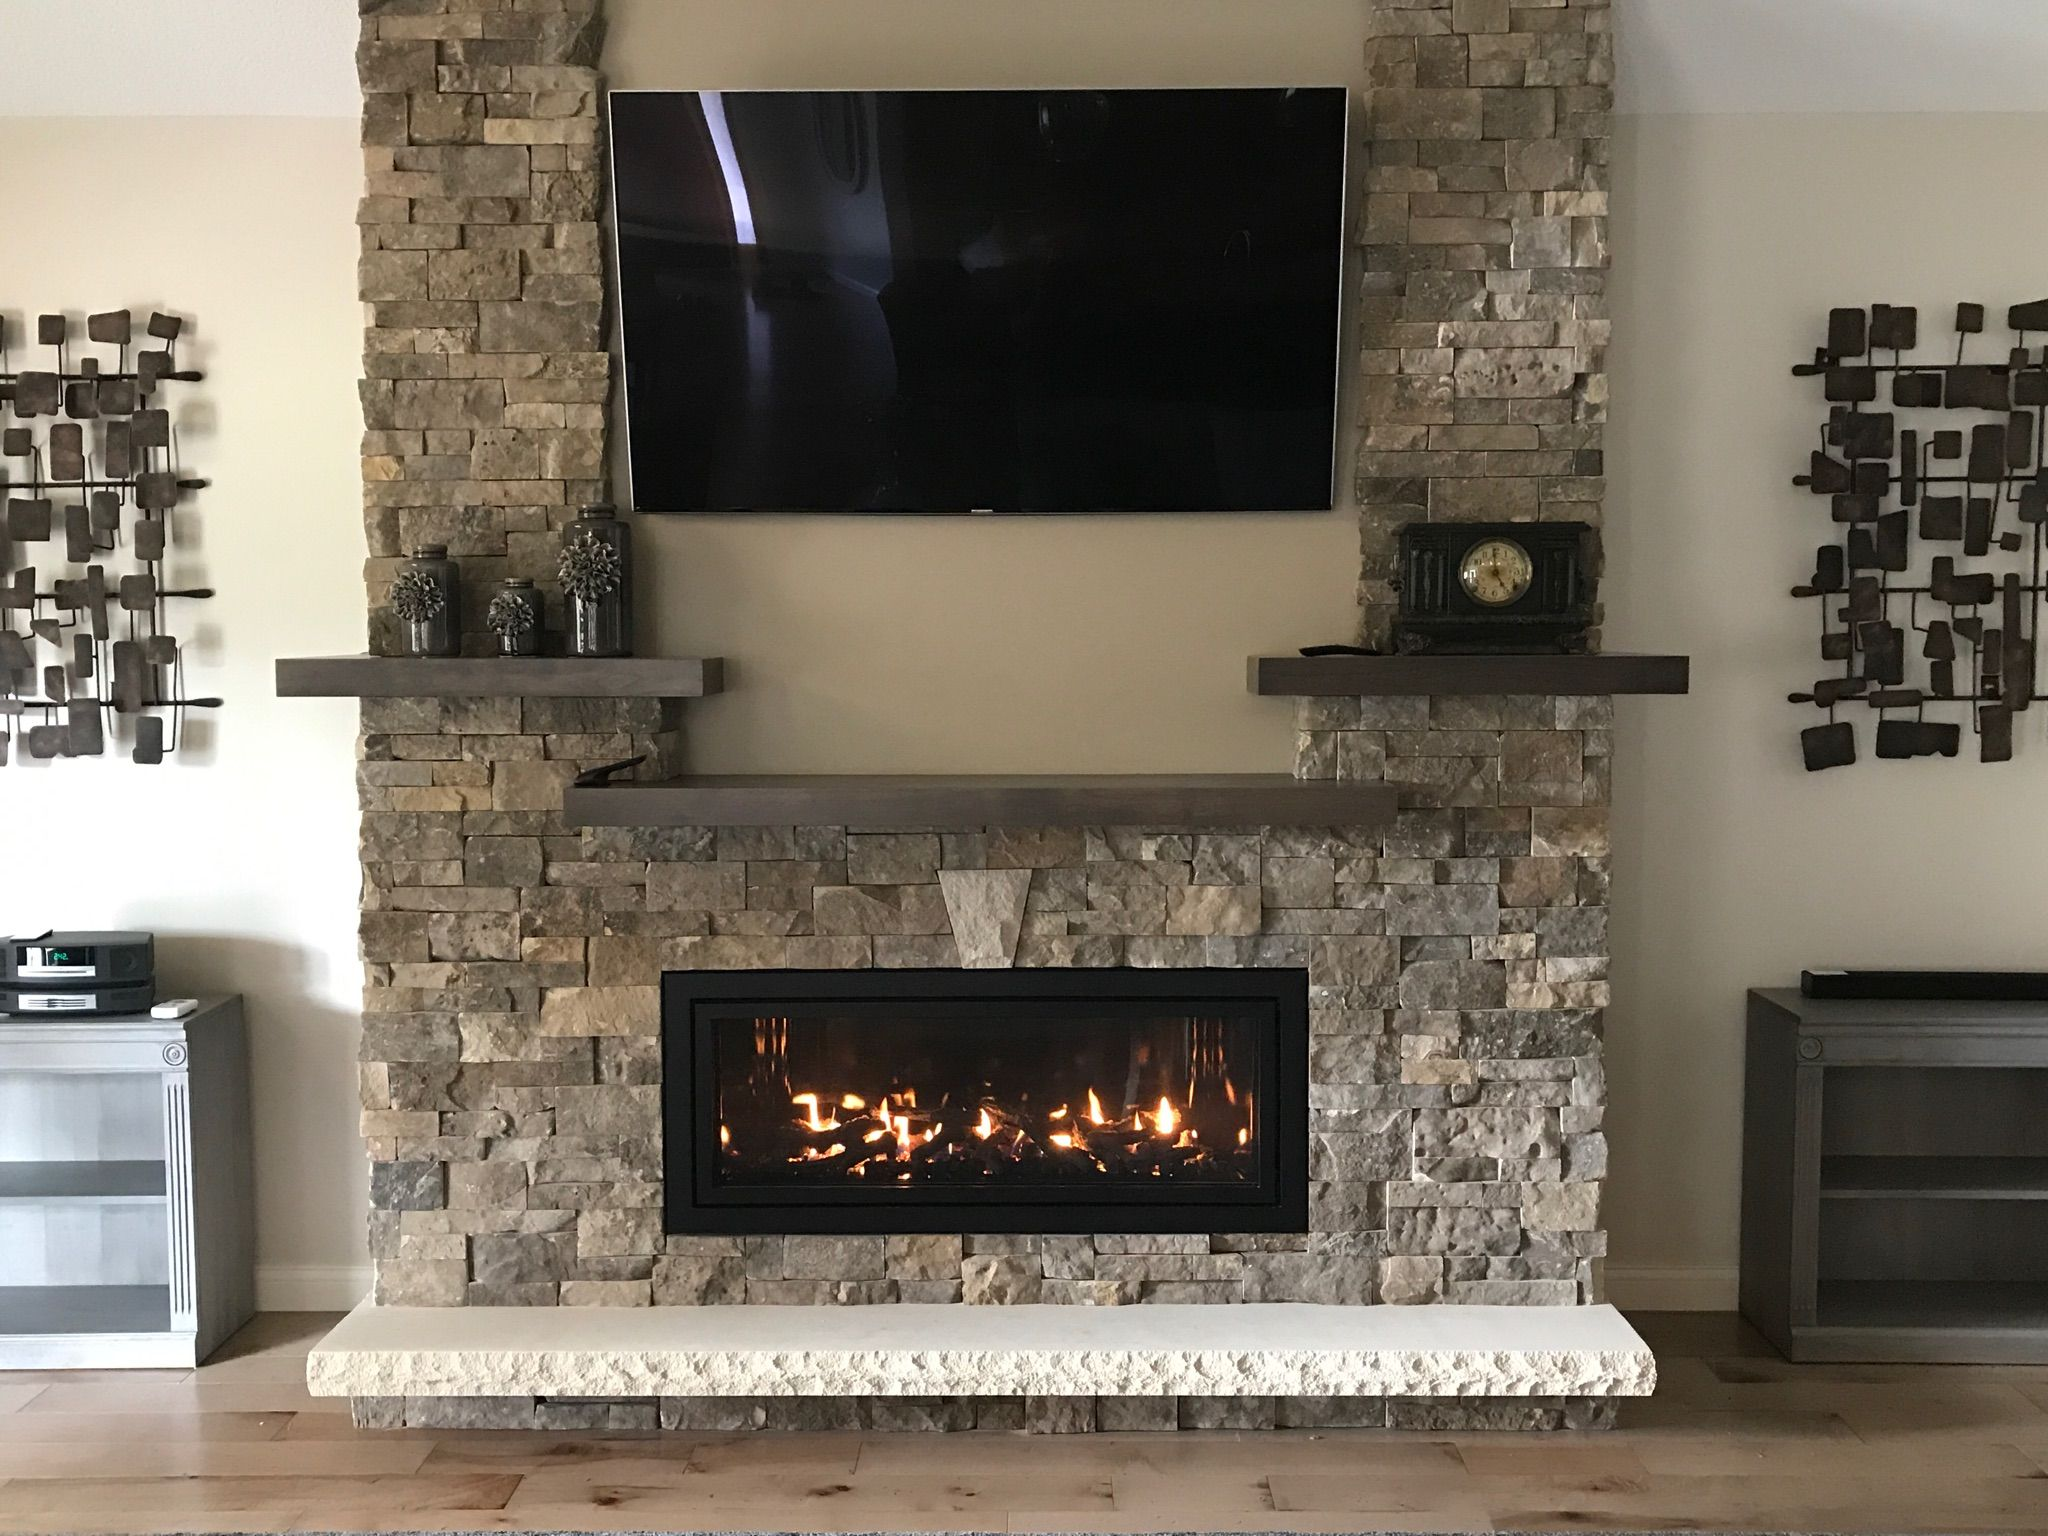 Fireplace Plus Ml47 Beautiful Install Of A Mendota Ml47 From